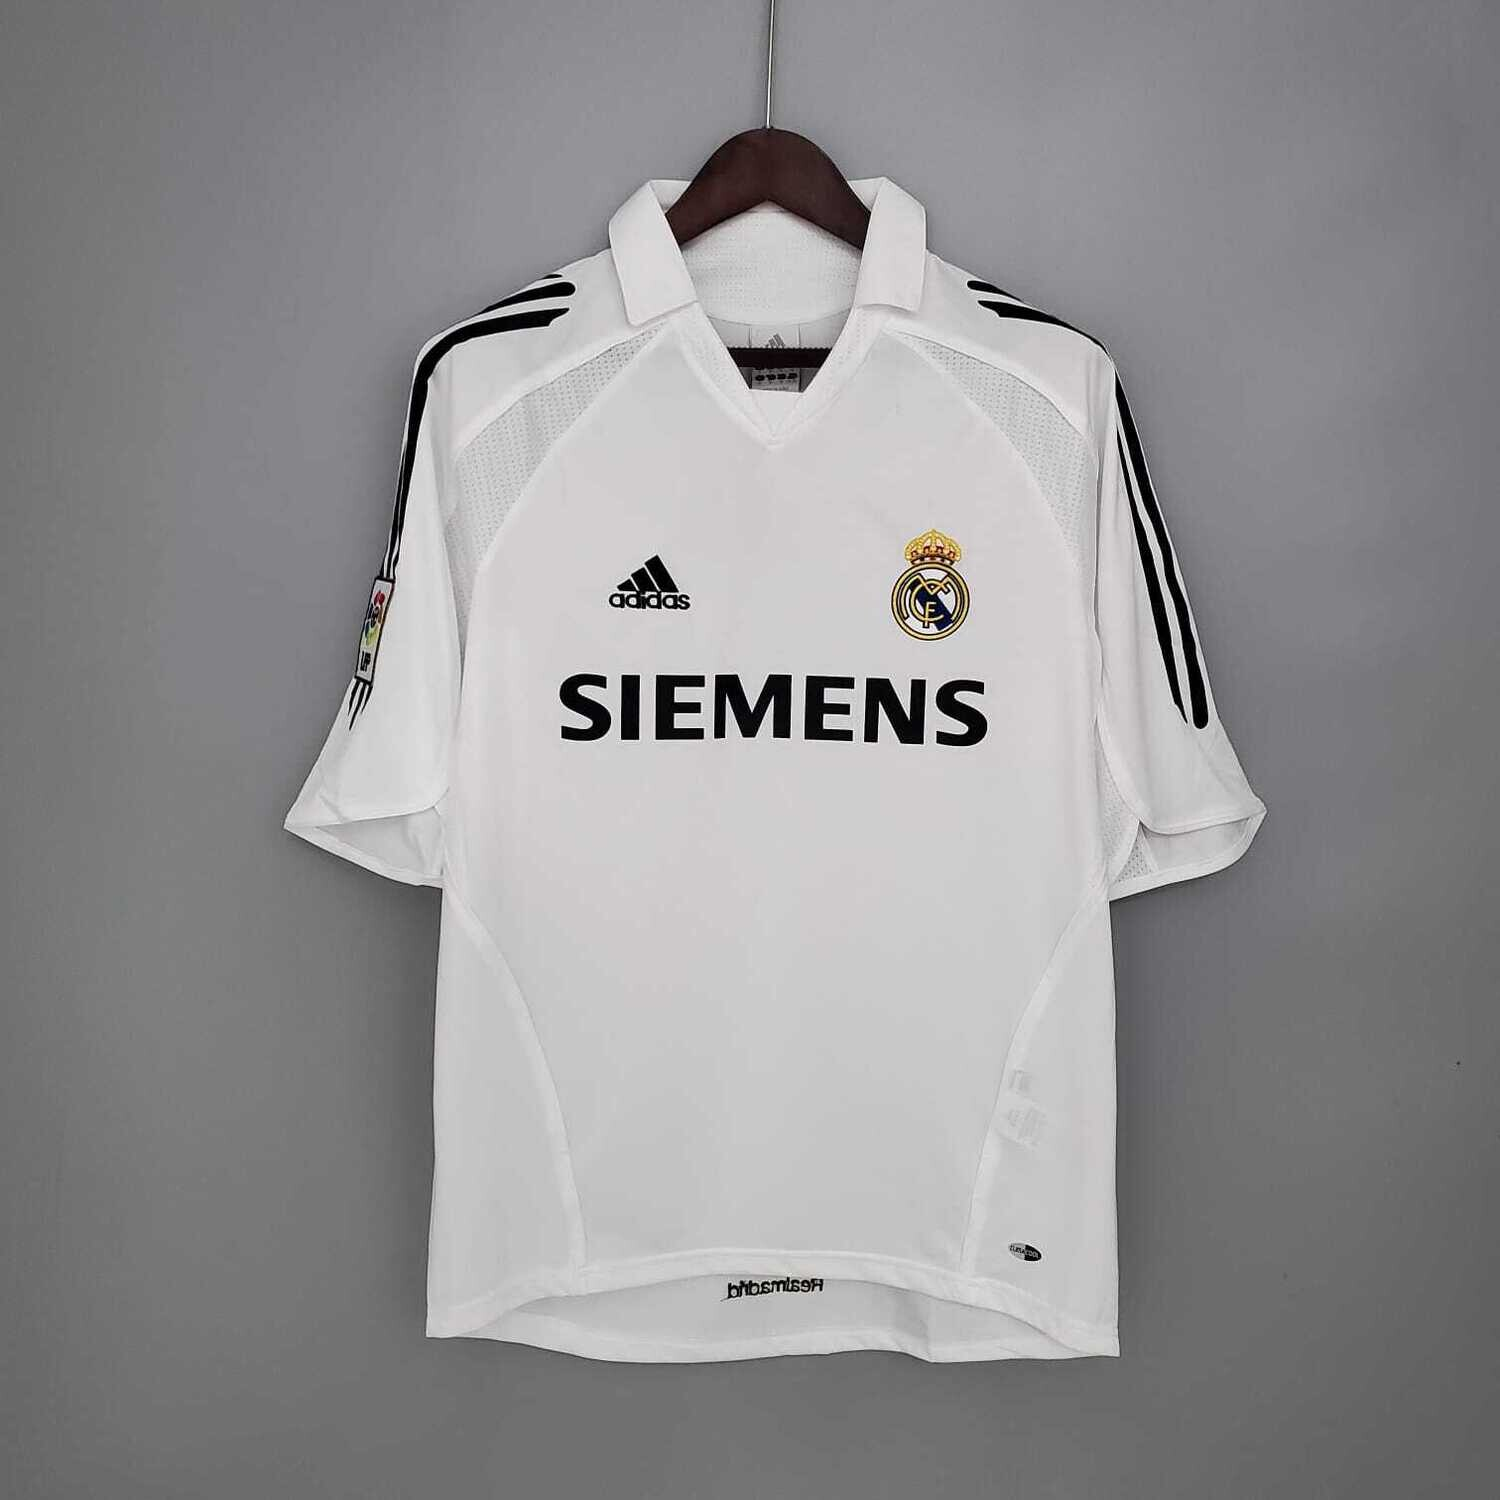 Real Madrid 2005-06 Retro Home Jersey [Pre-paid Only]